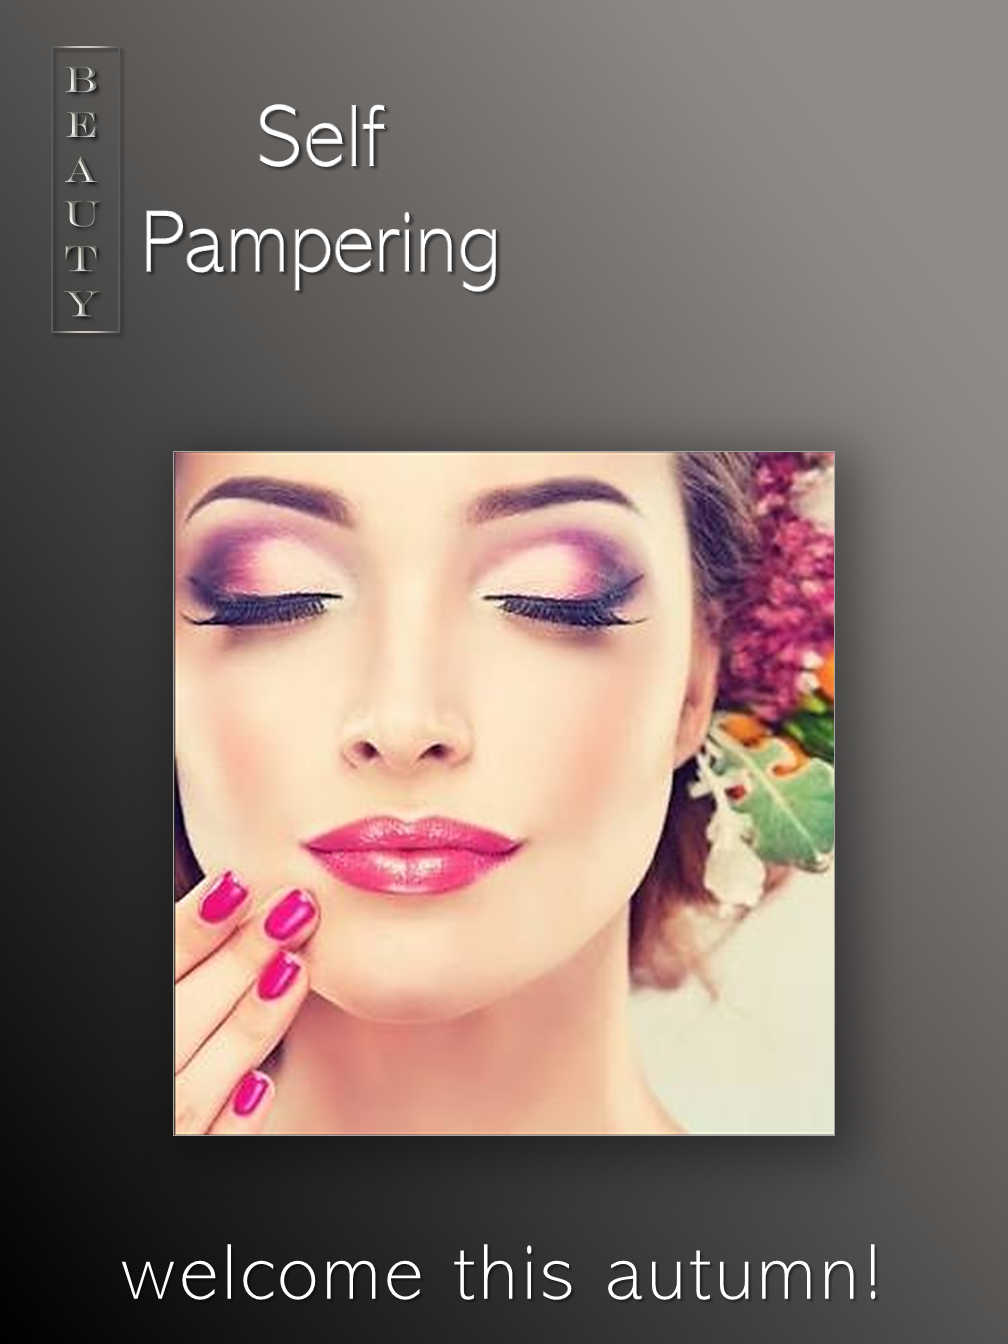 Self Pampering